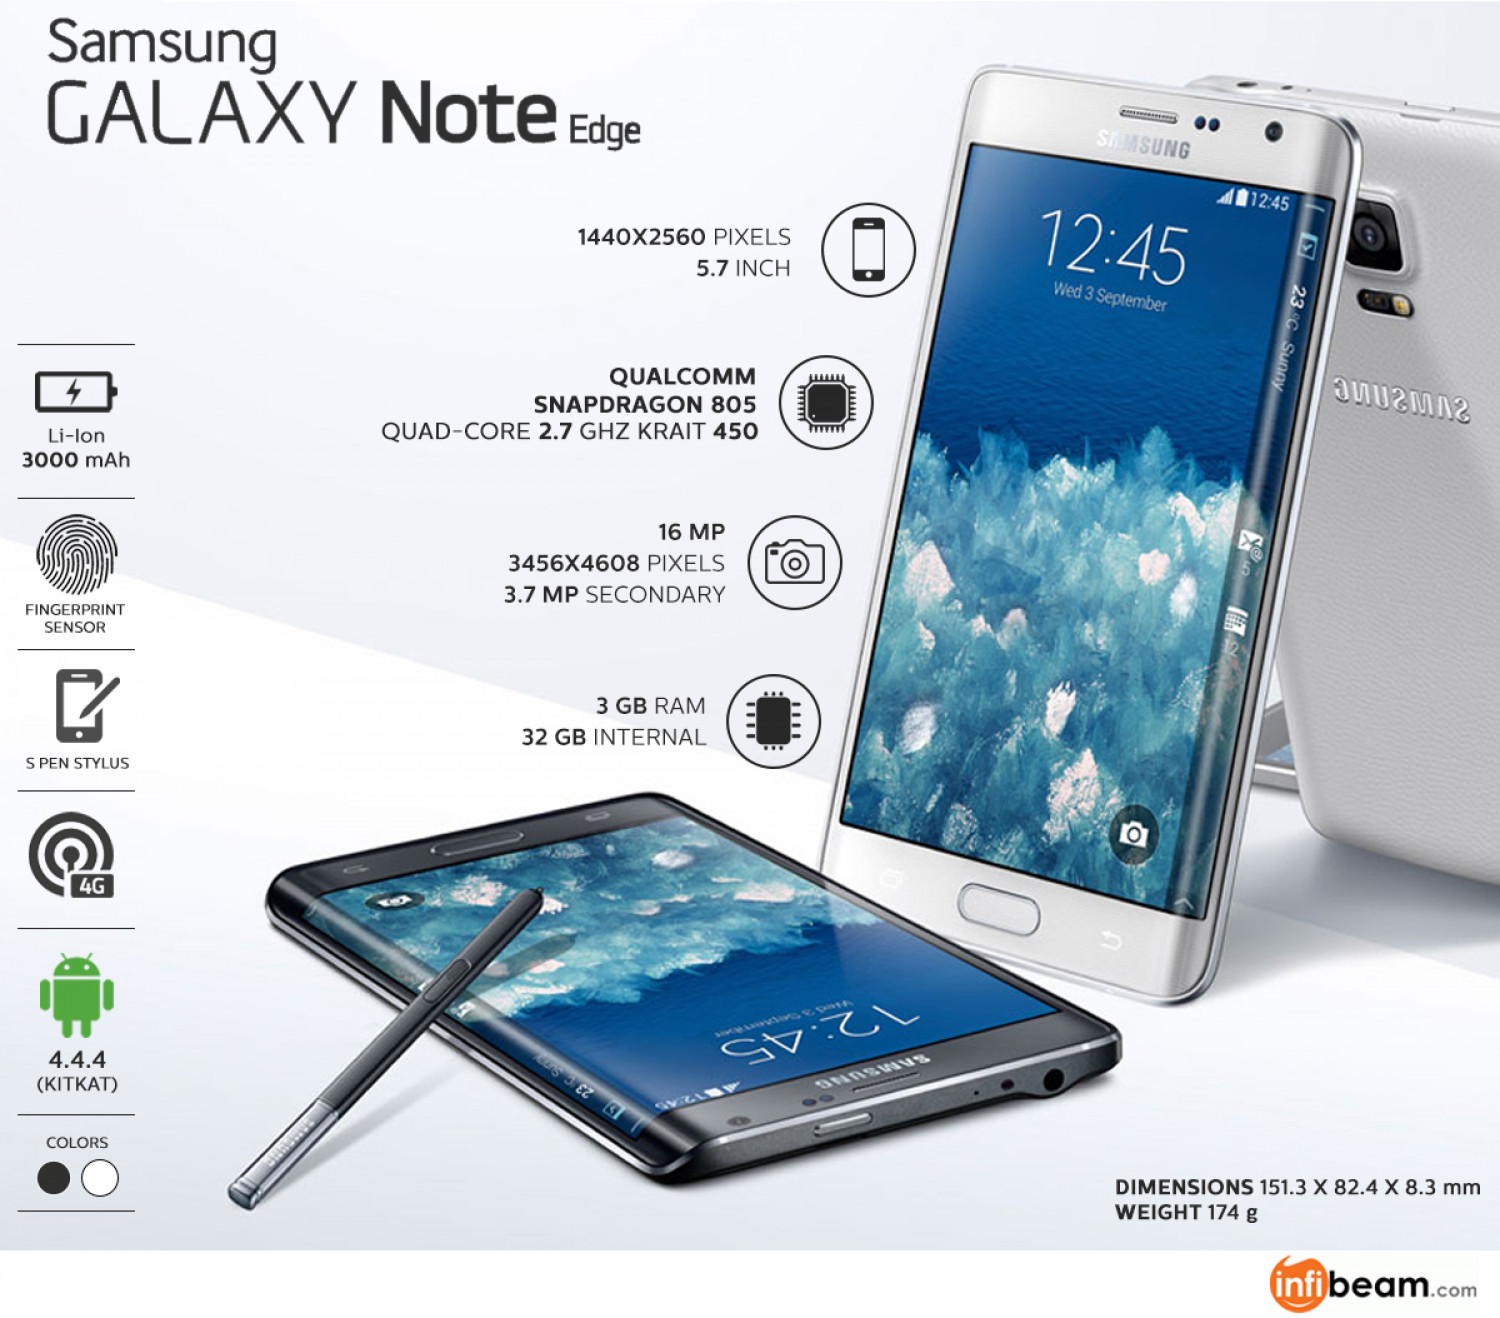 Samsung Galaxy Note Edge: Experience Extraordinary Features Infographic